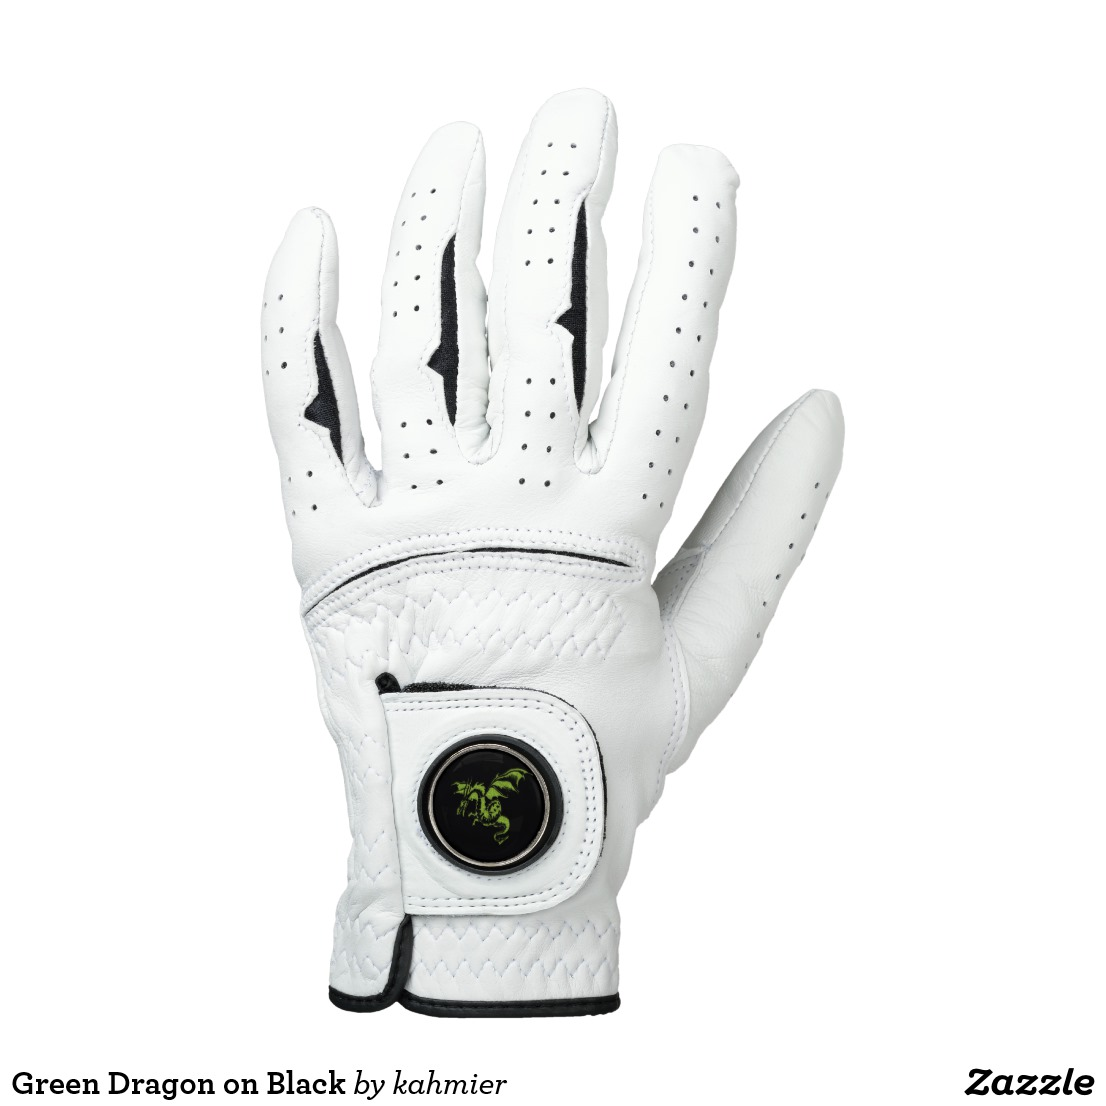 Green Dragon on Black Golf Glove